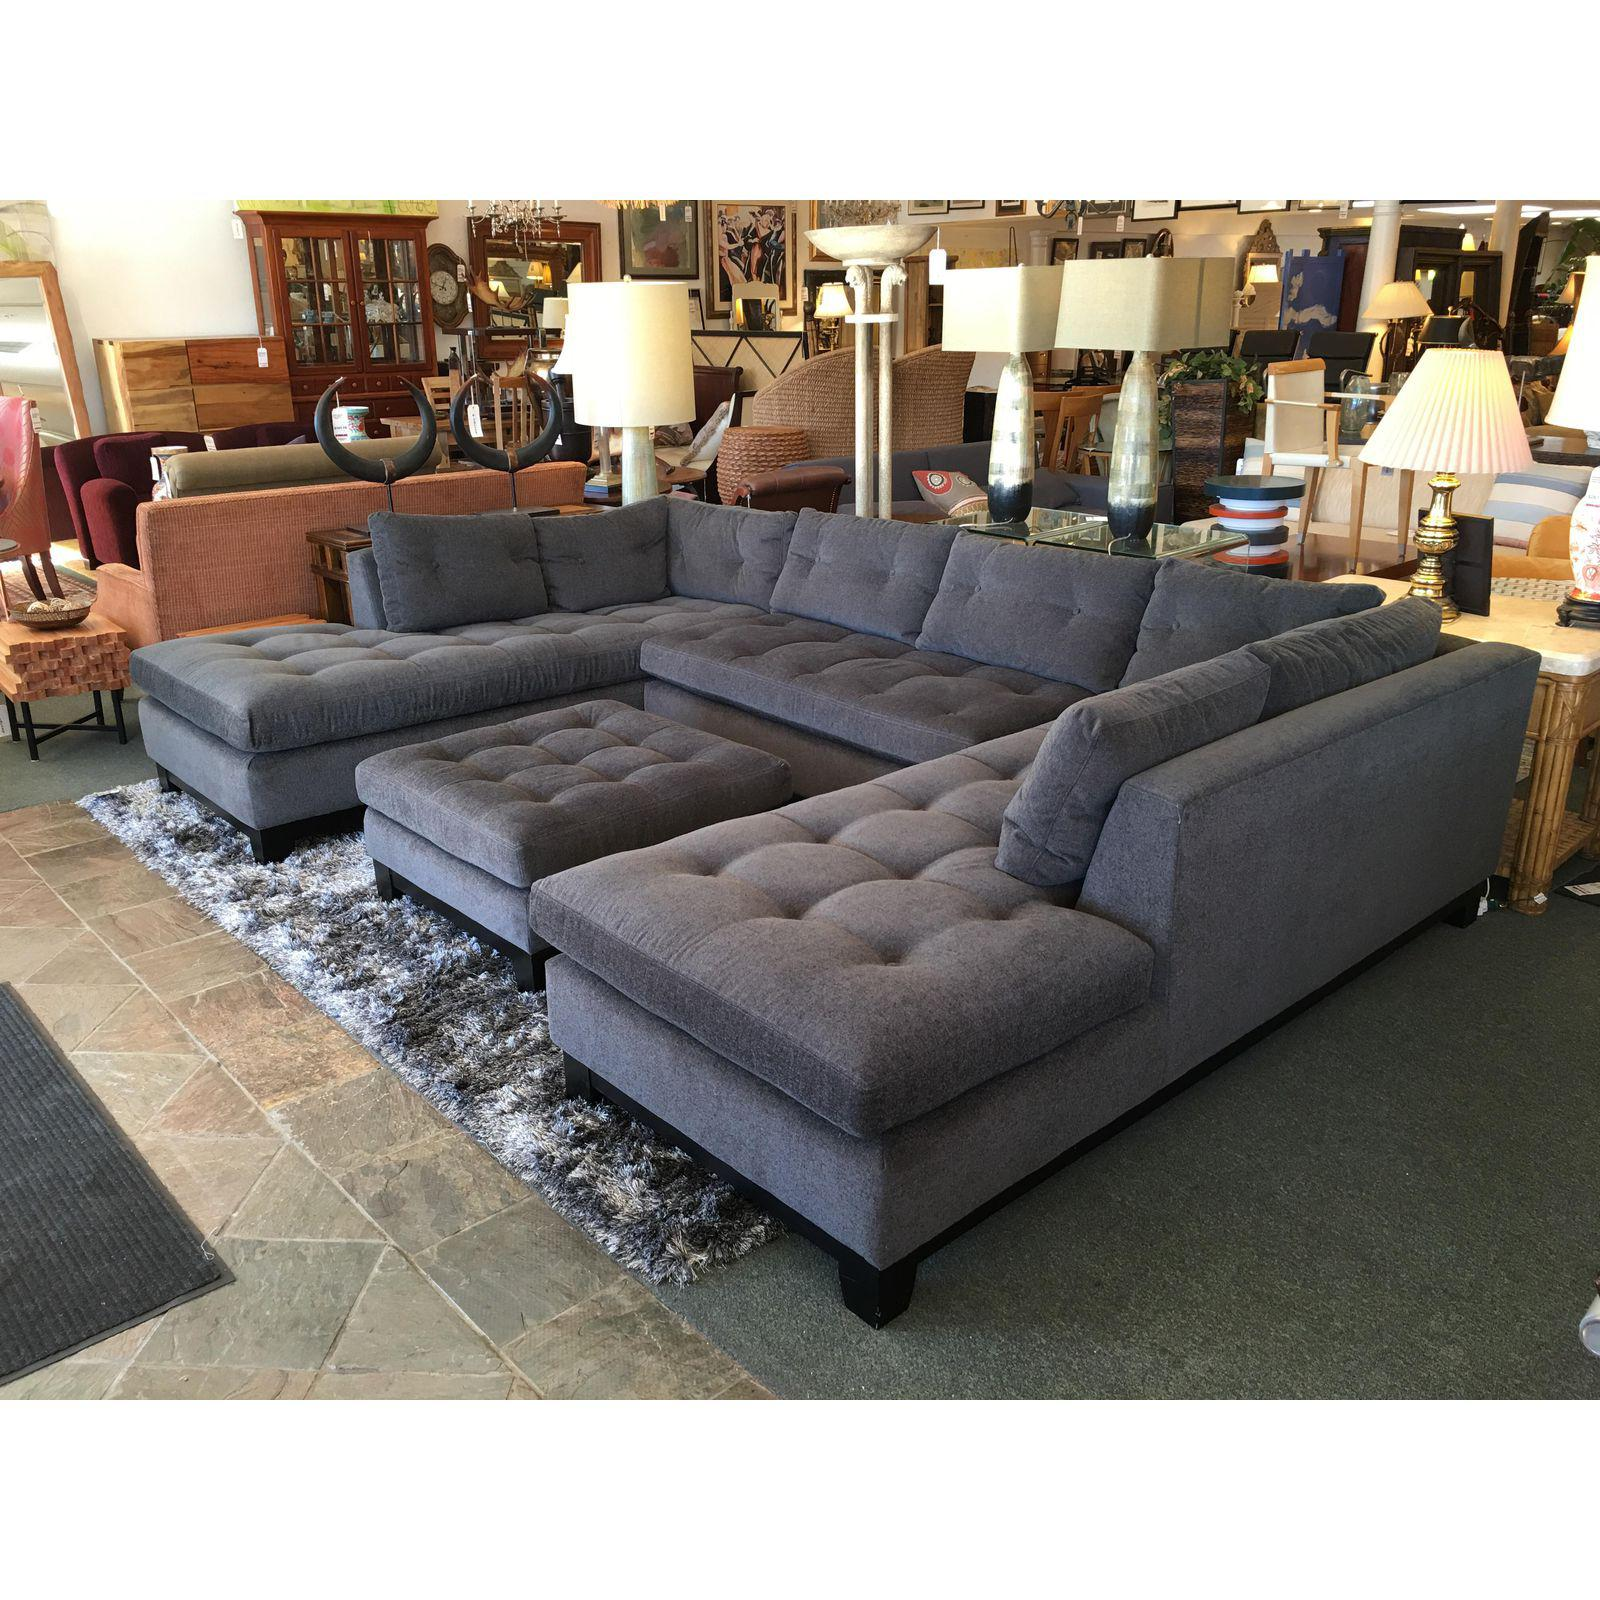 large seat depth sofas sofa bed nz auckland arhaus dune sectional 43 ottoman design plus gallery